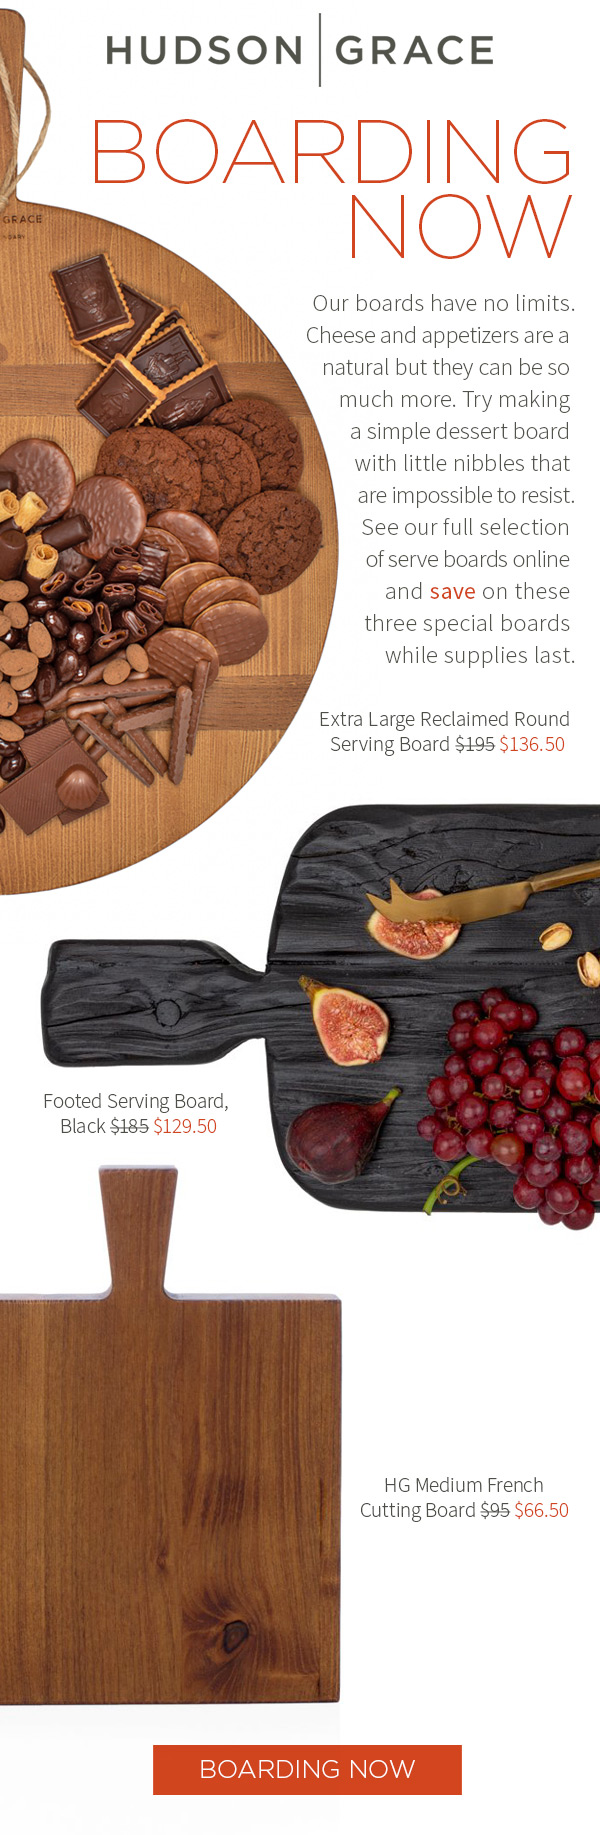 Boarding now. Our boards have no limits.?Cheese and appetizers are a natural but they can be so much more.?Try making a simple dessert board with little nibbles that are impossible to resist. See our full selection of serve boards online and save on these three special boards while supplies last. Extra Large Reclaimed Round Serving Board $136.50 .?Black Footed Serving Board $129.50 .?HG Medium French Cutting Board $66.50. Boarding now.